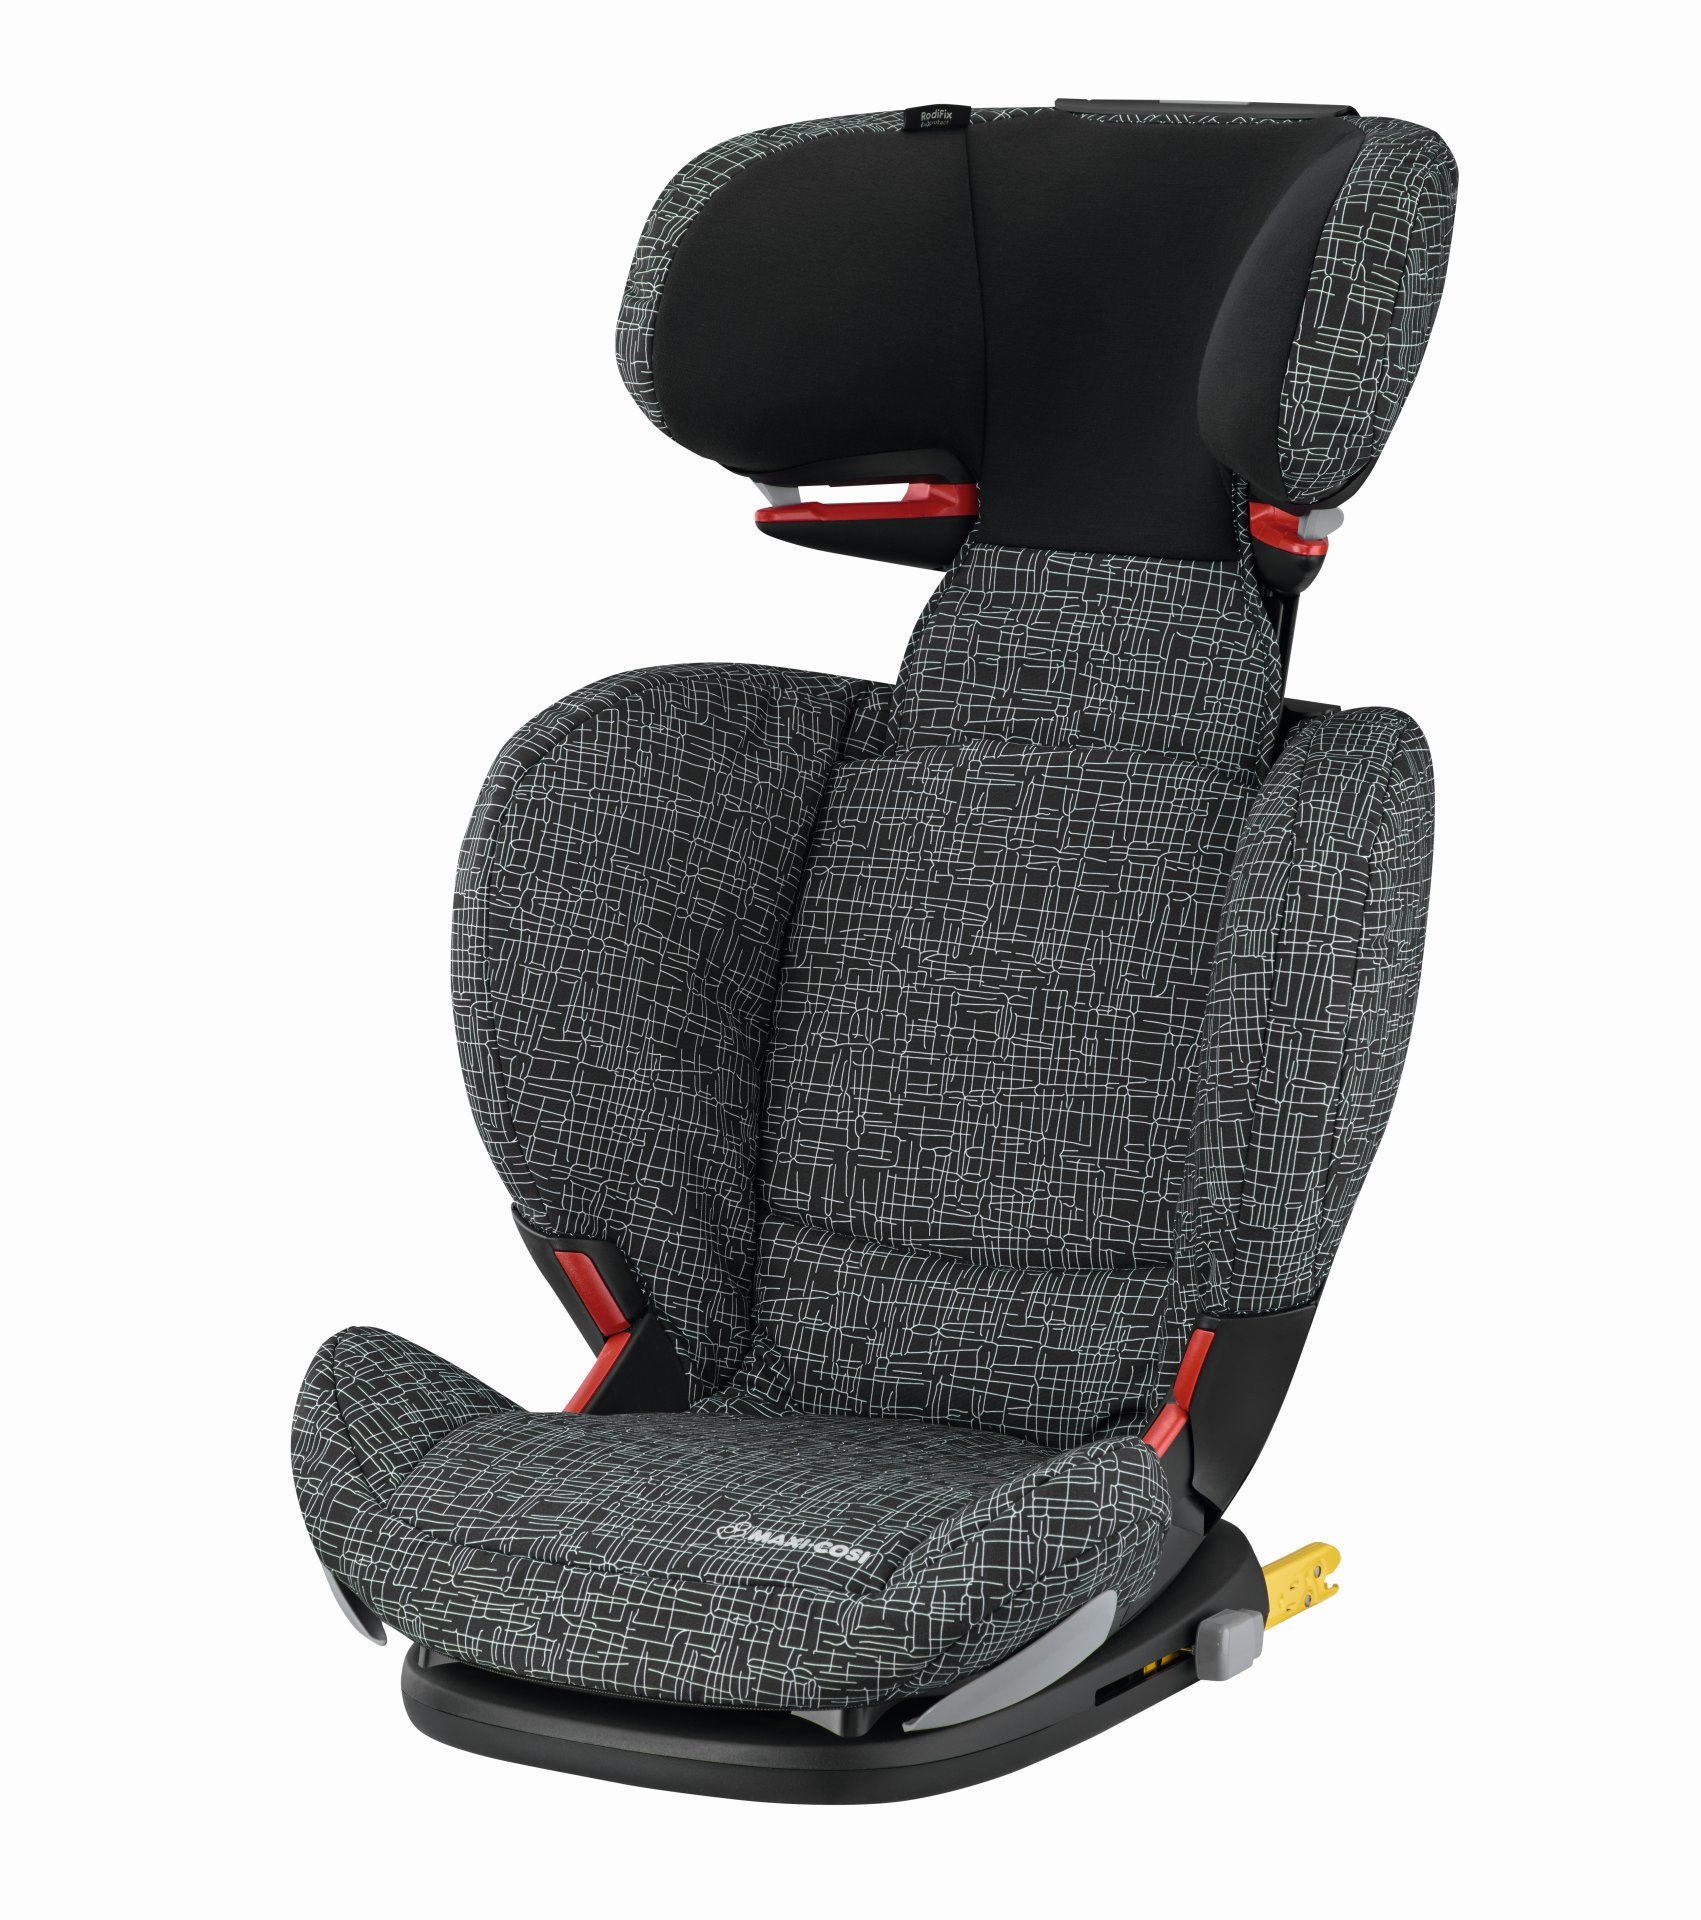 maxi cosi child car seat rodifix airprotect 2019. Black Bedroom Furniture Sets. Home Design Ideas